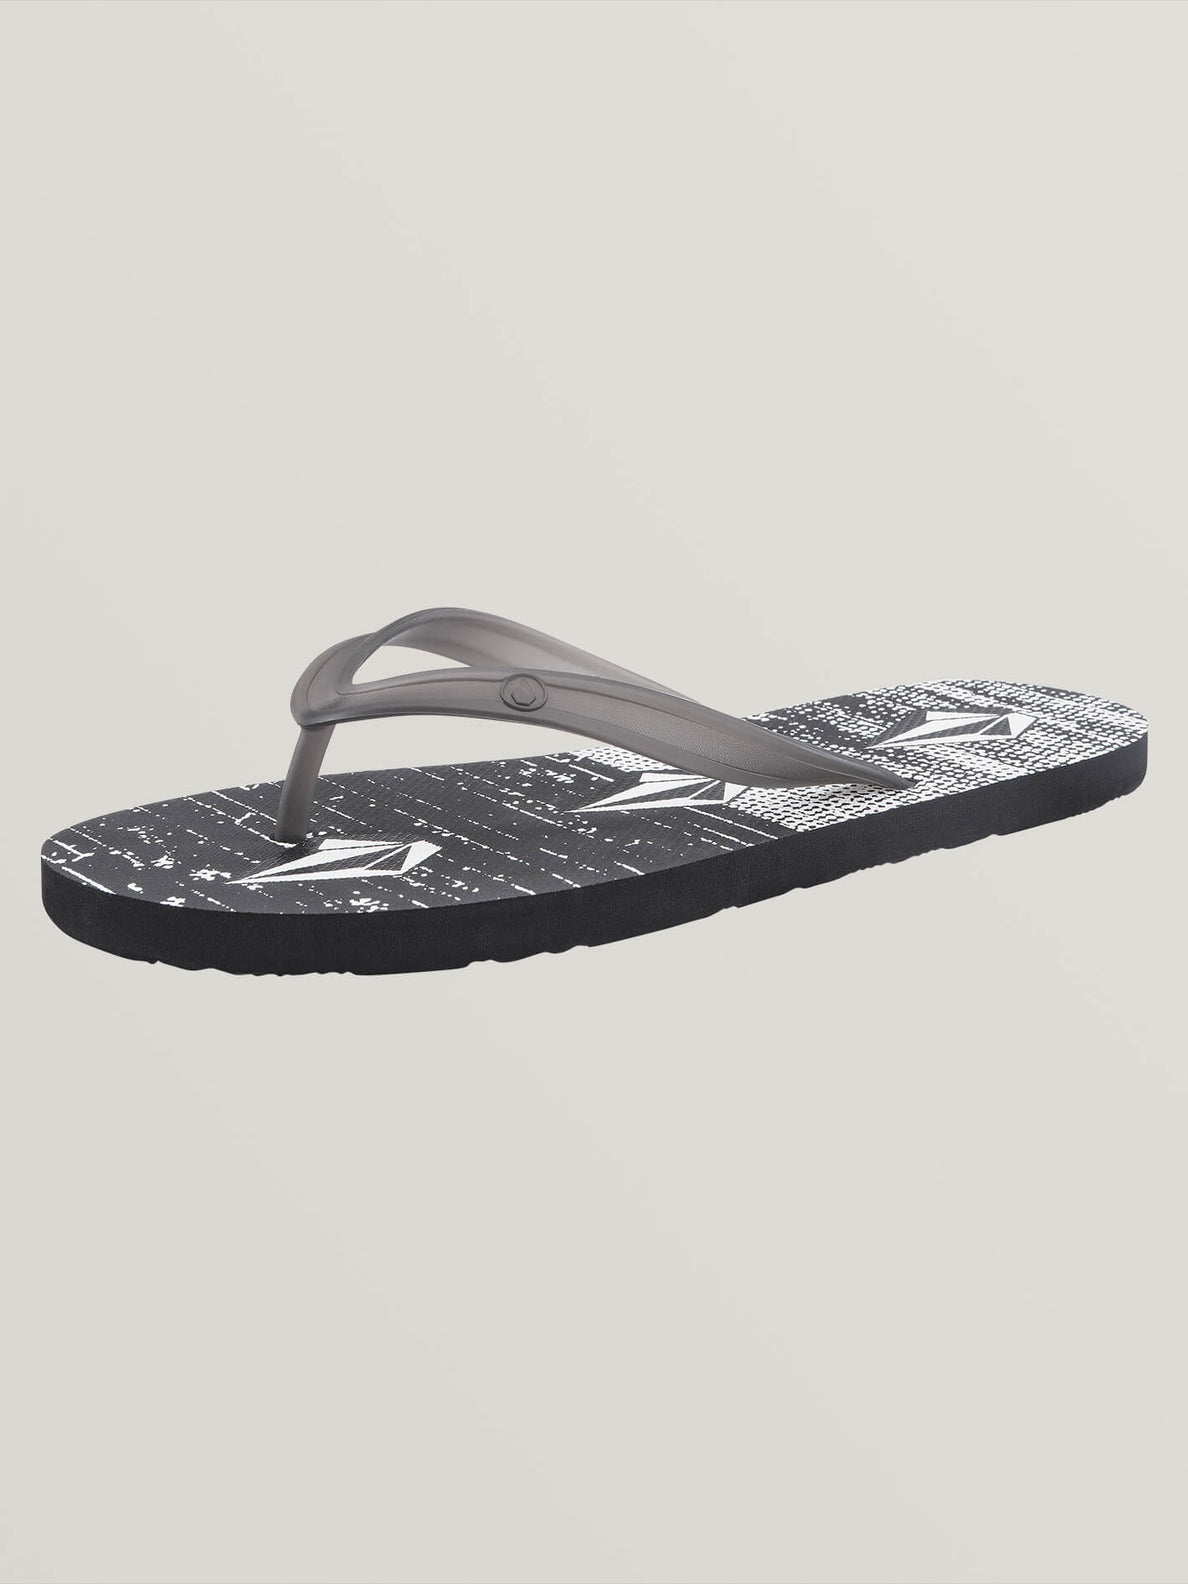 Rocker 2 Sandals - Black White